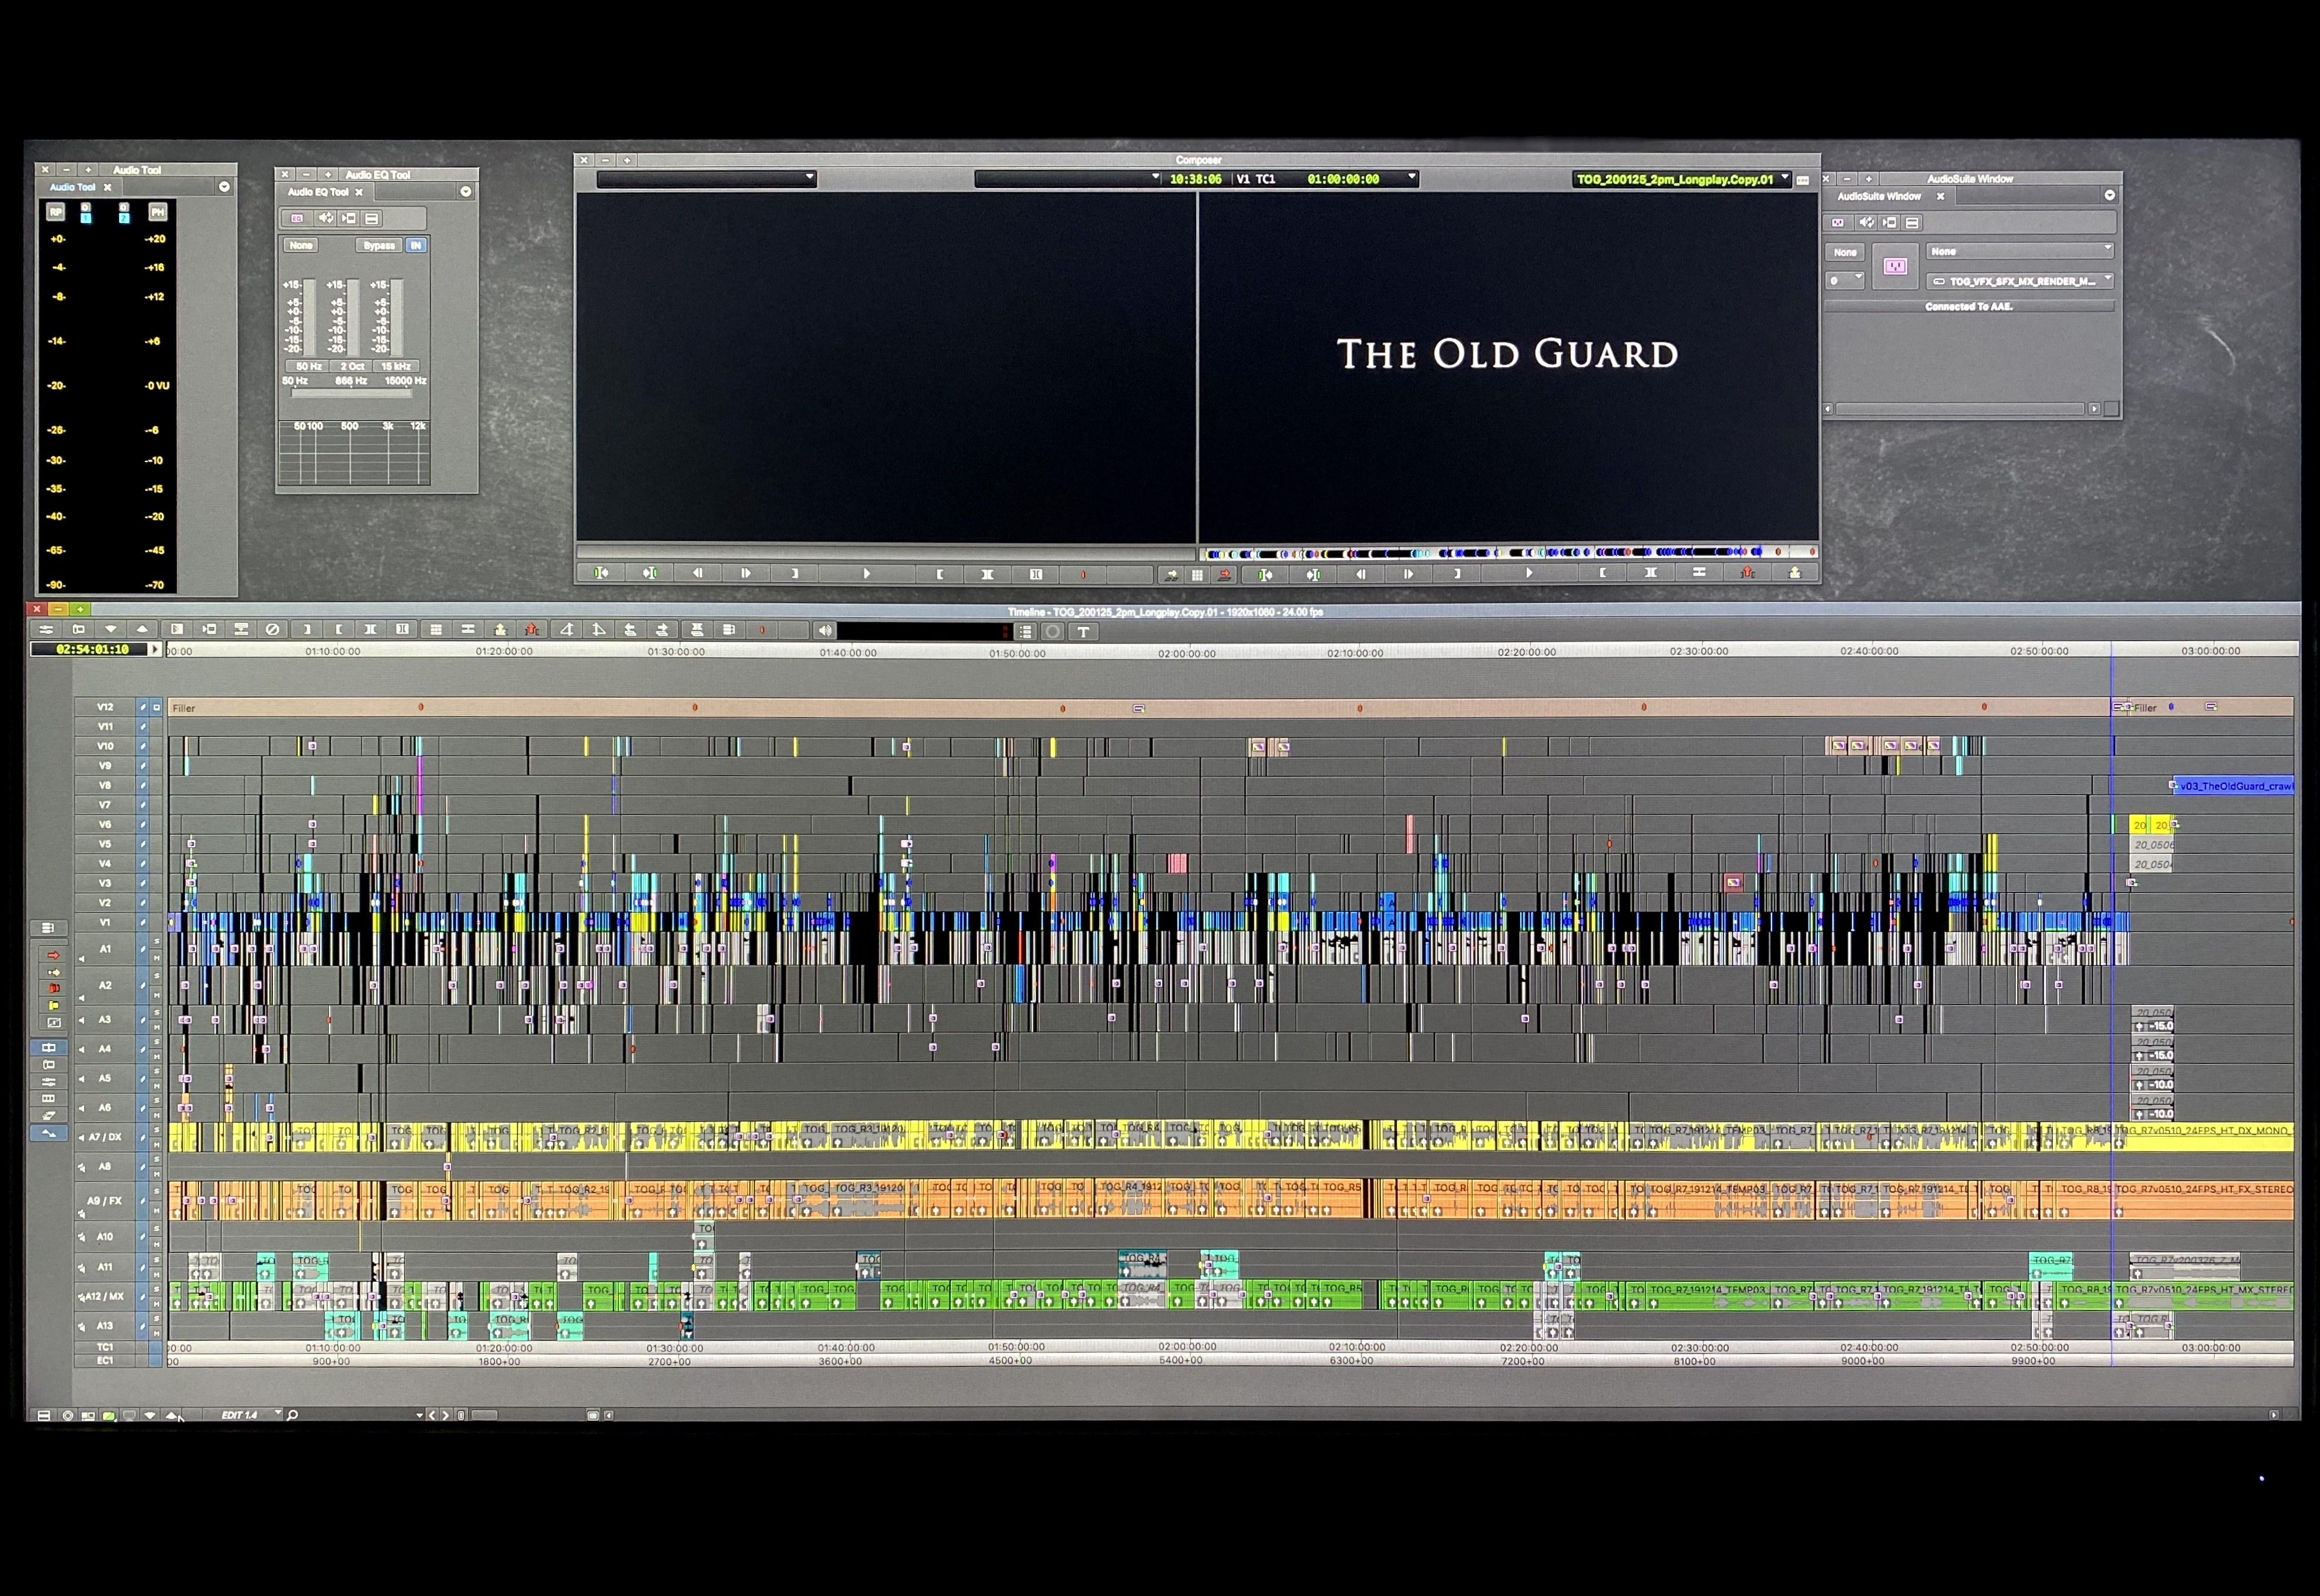 The Old Guard Avid timeline